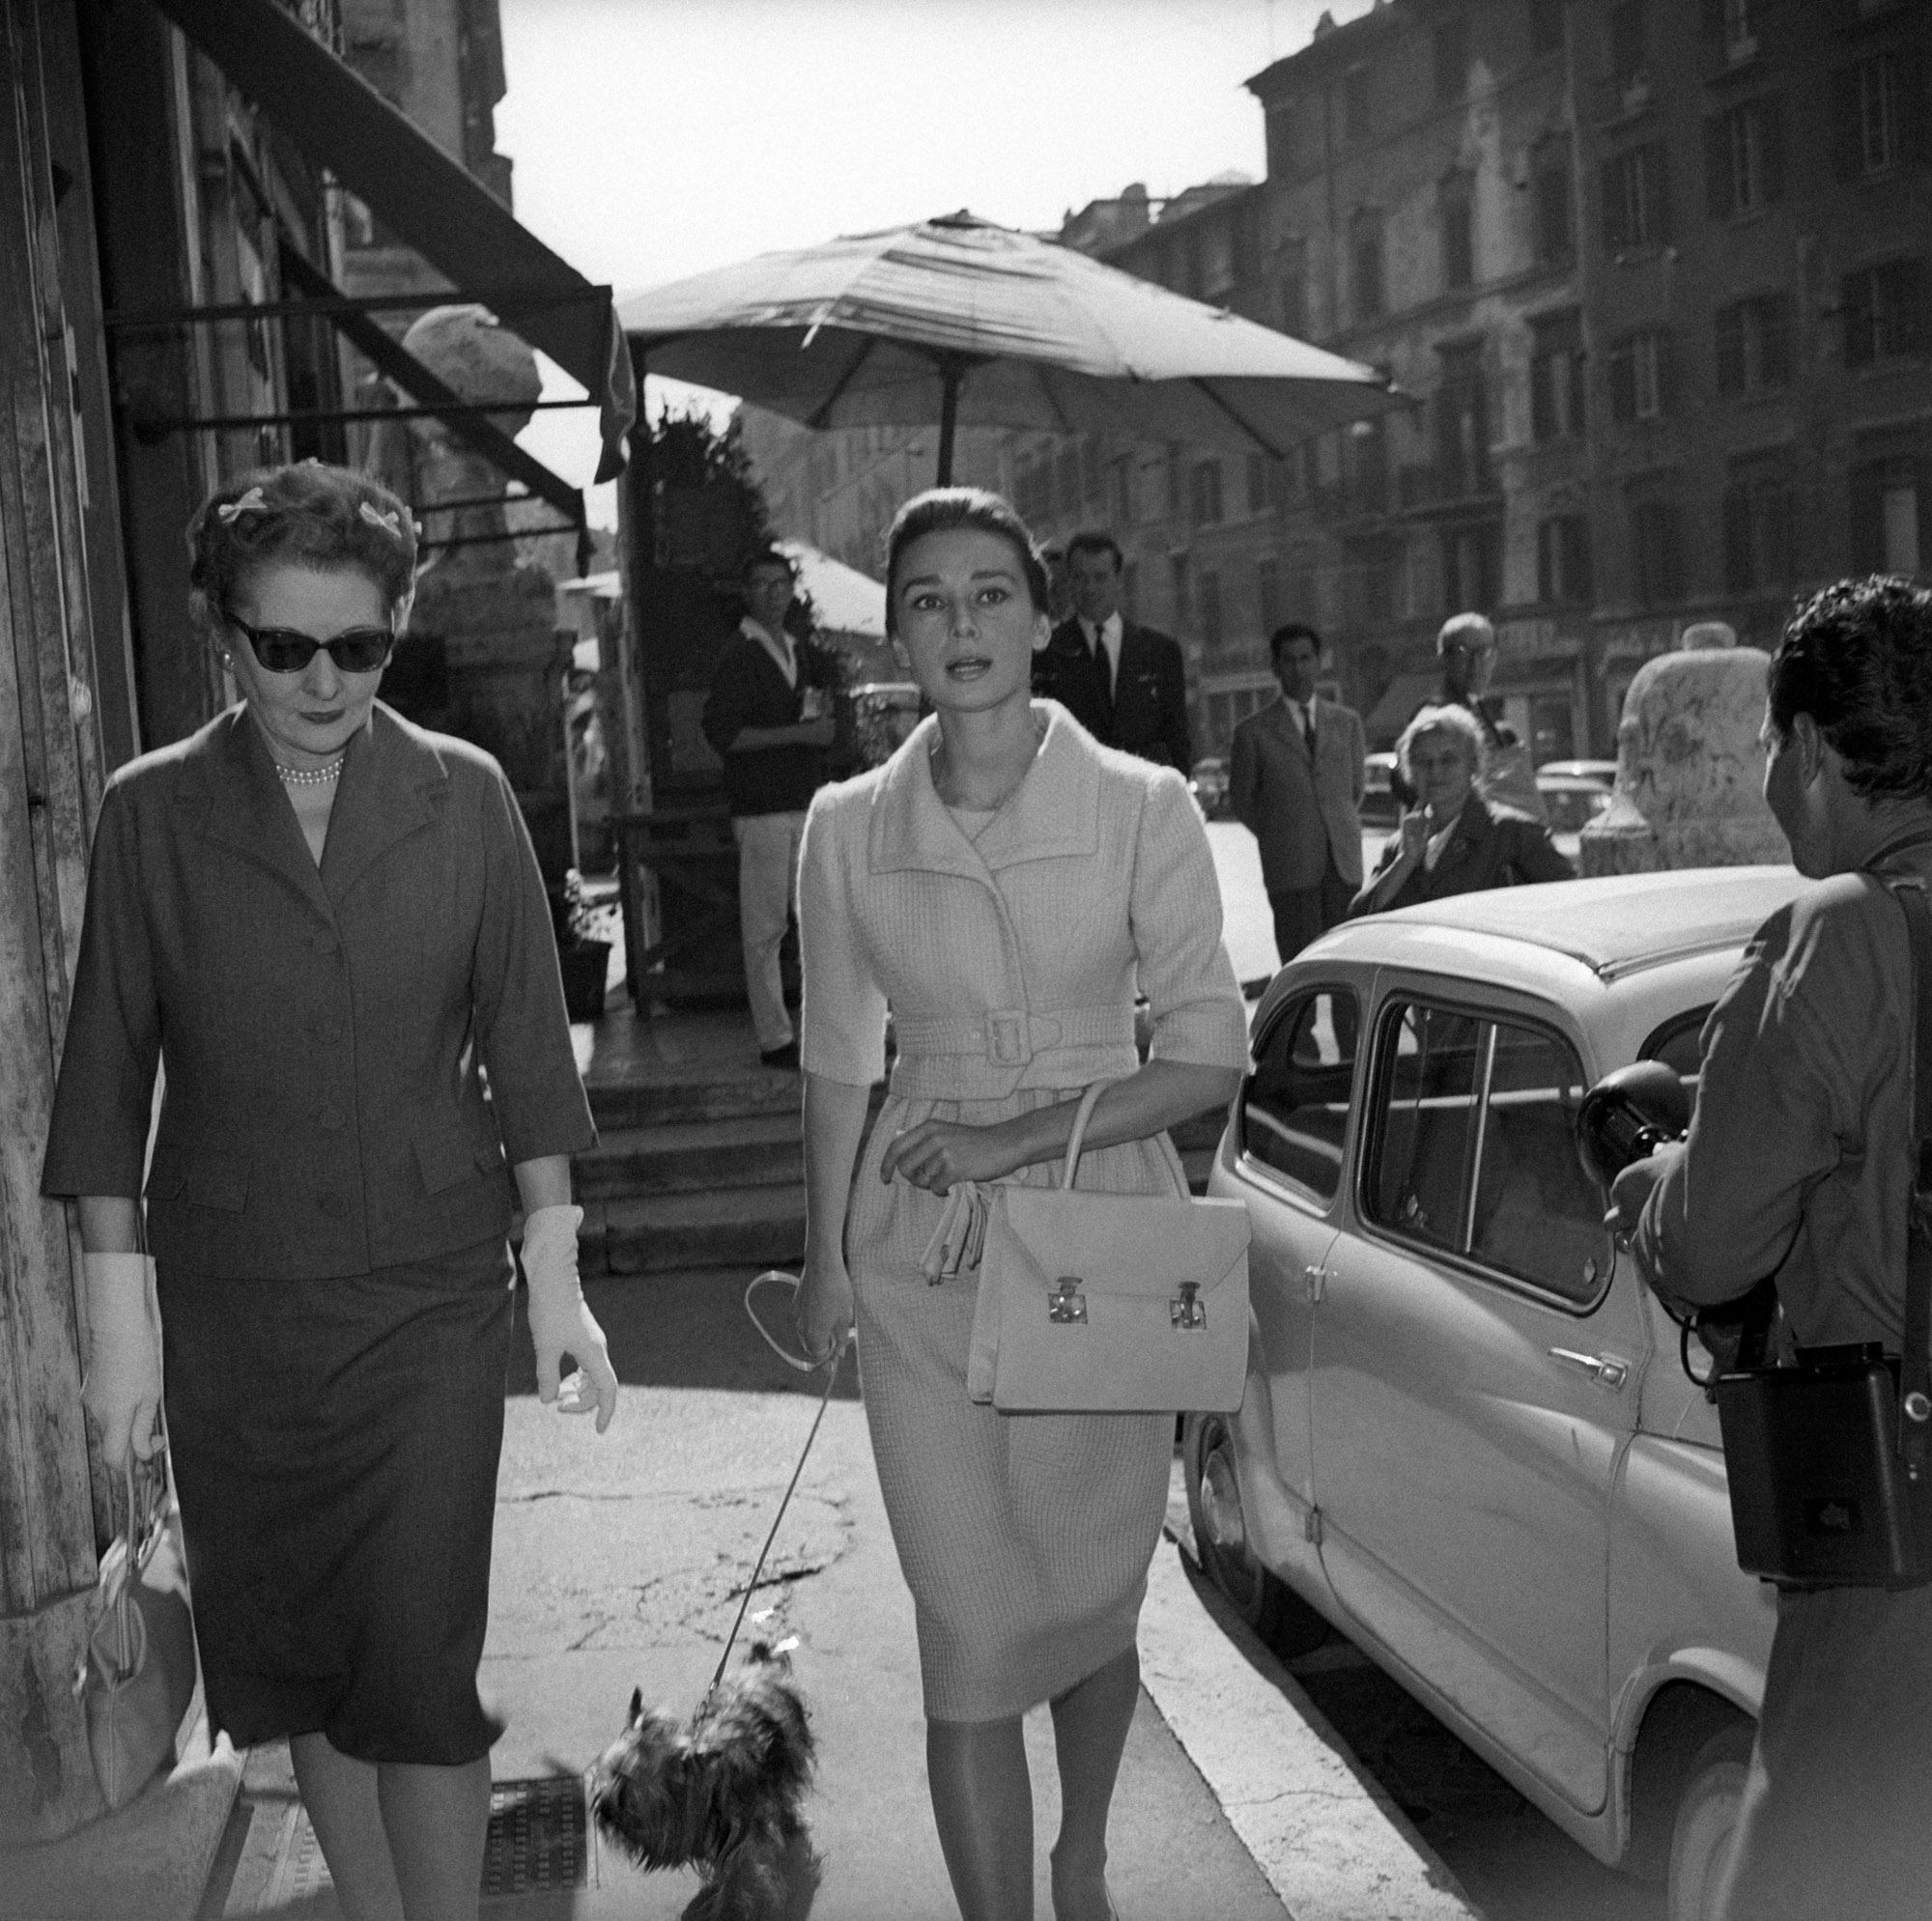 the life of audrey hepburn Audrey hepburn's first major film role made her a star in the 1953 romance roman holiday, she played a princess who runs from her duties and falls in love with a journalist played by gregory peck.